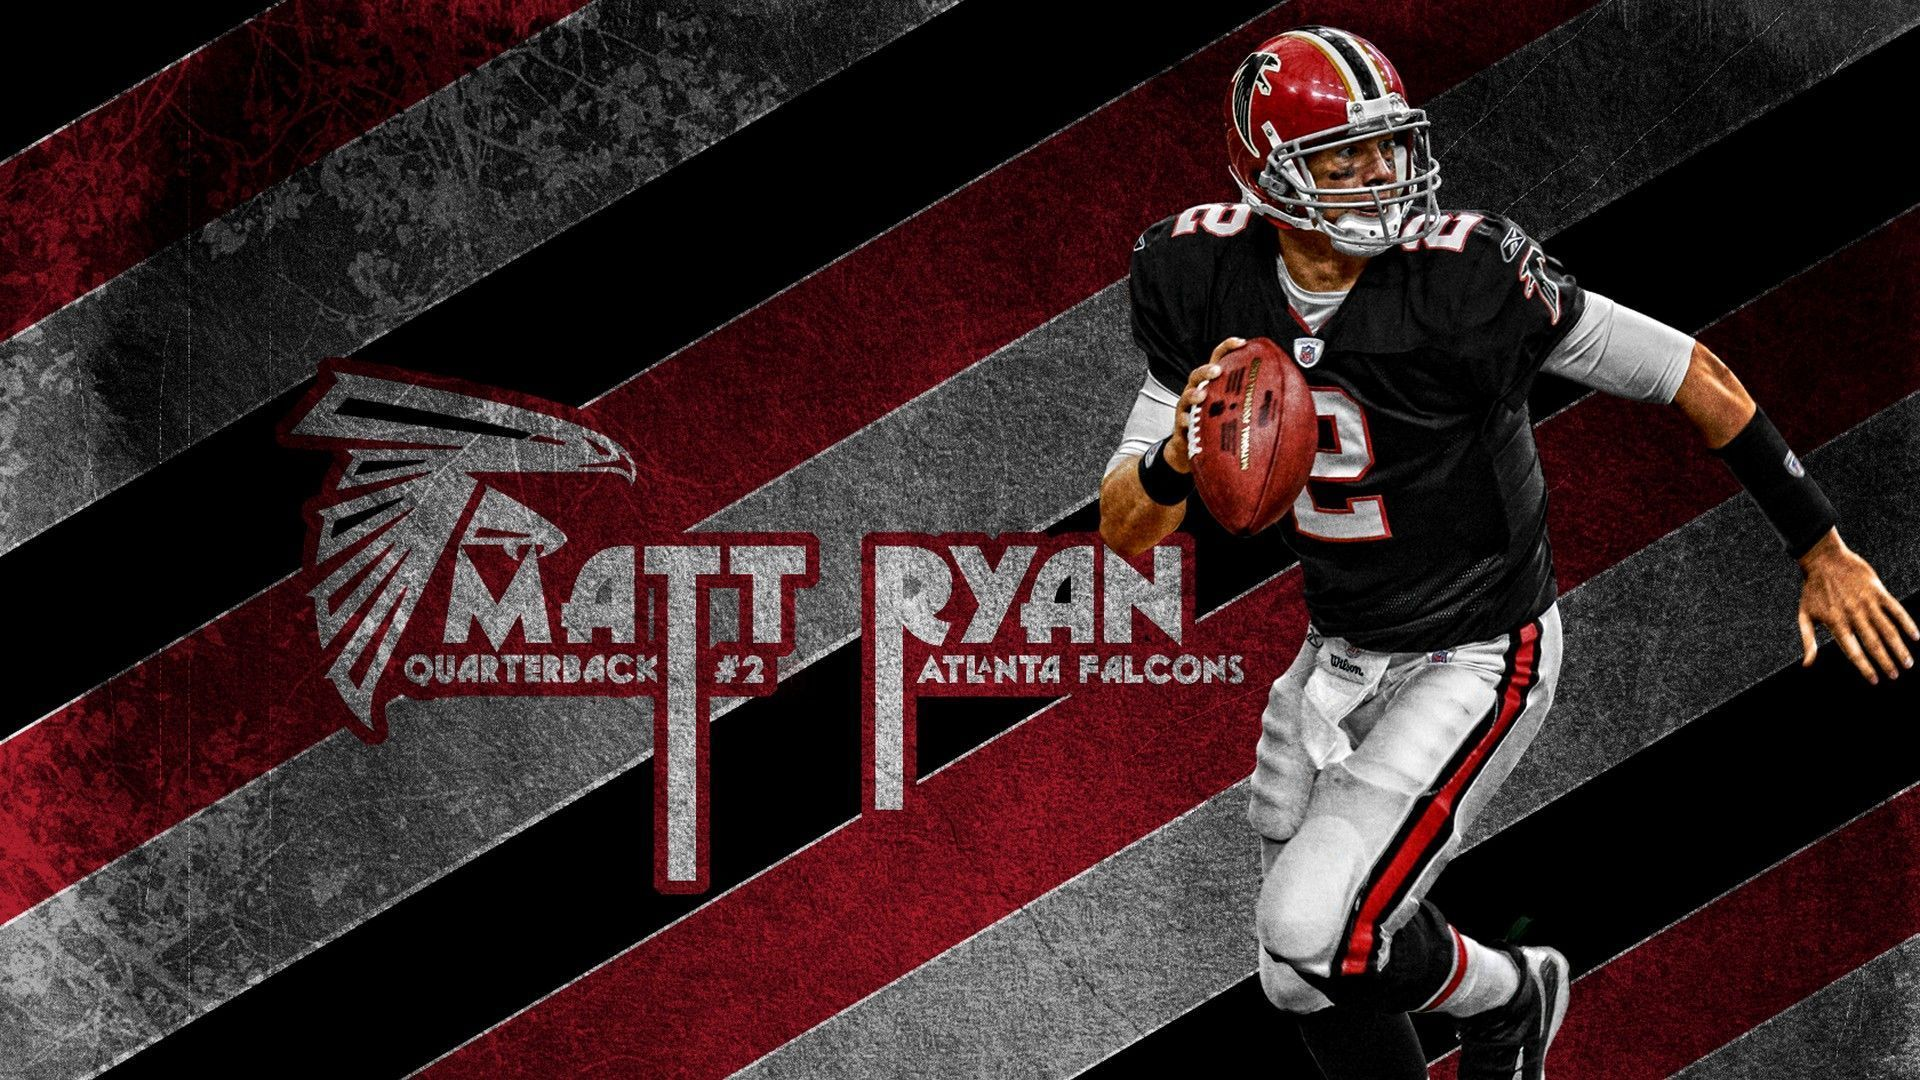 Falcons For Pc Wallpaper In 2020 Nfl Football Wallpaper Atlanta Falcons Wallpaper Football Wallpaper